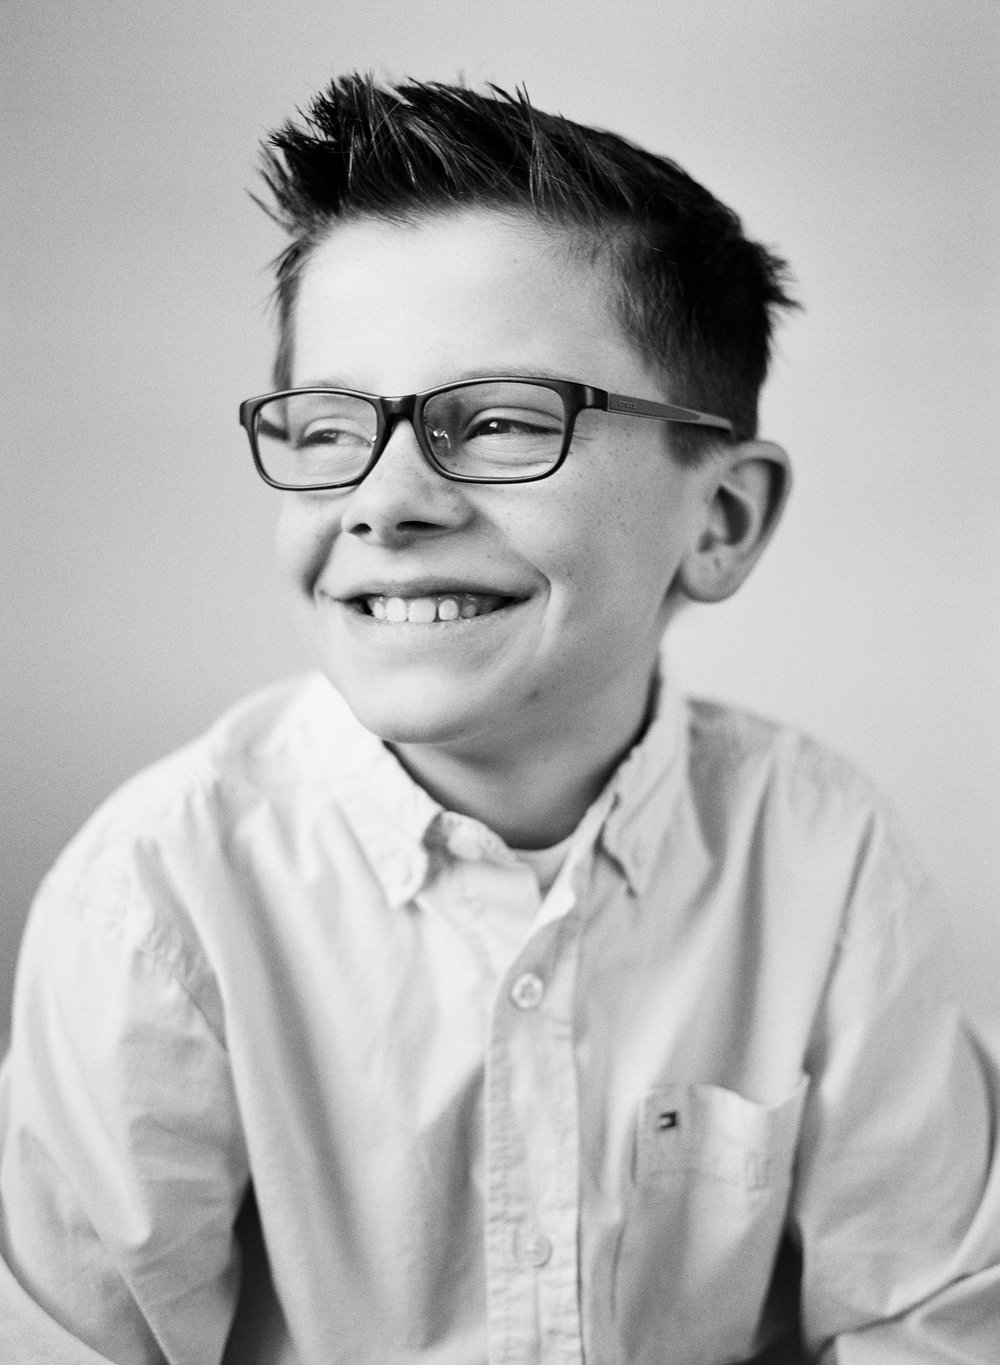 birthday black and white child portrait